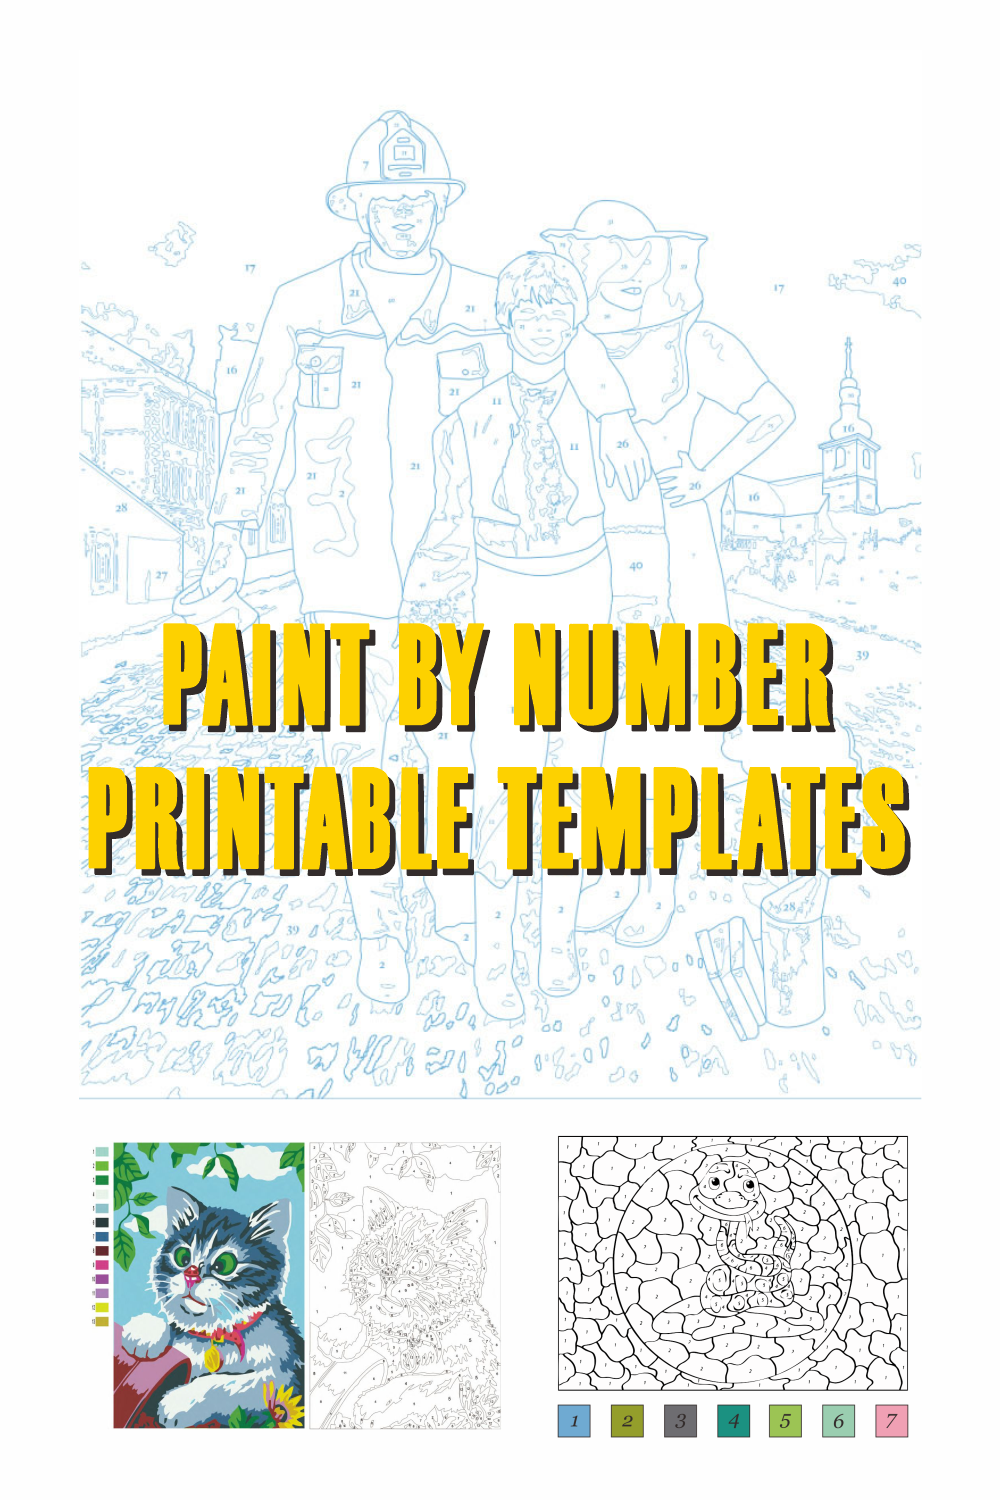 Paint By Number Printable Templates